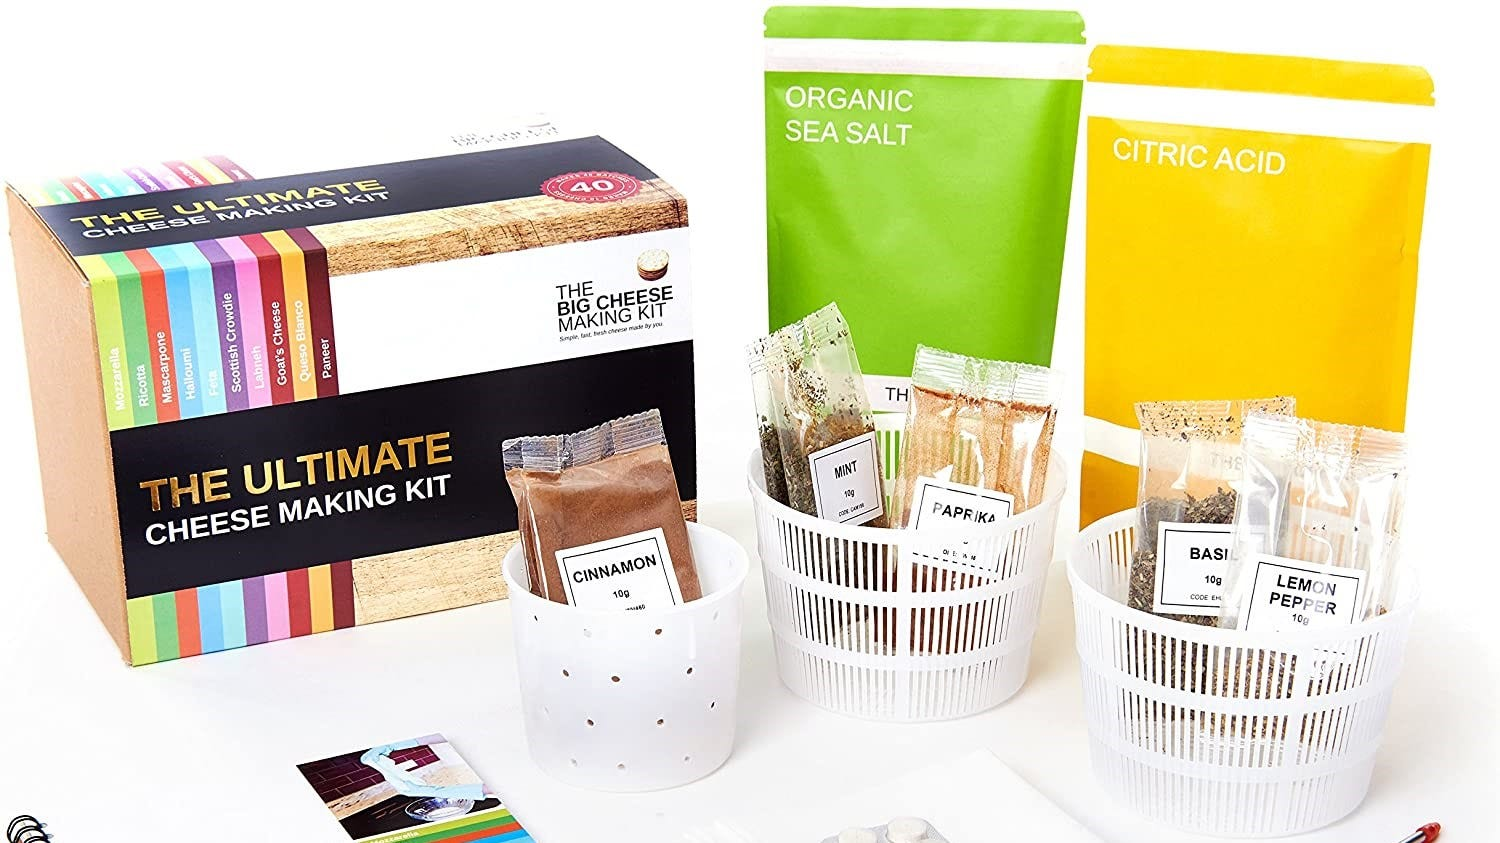 Some of the supplies in the Ultimate Cheese Making Kit.